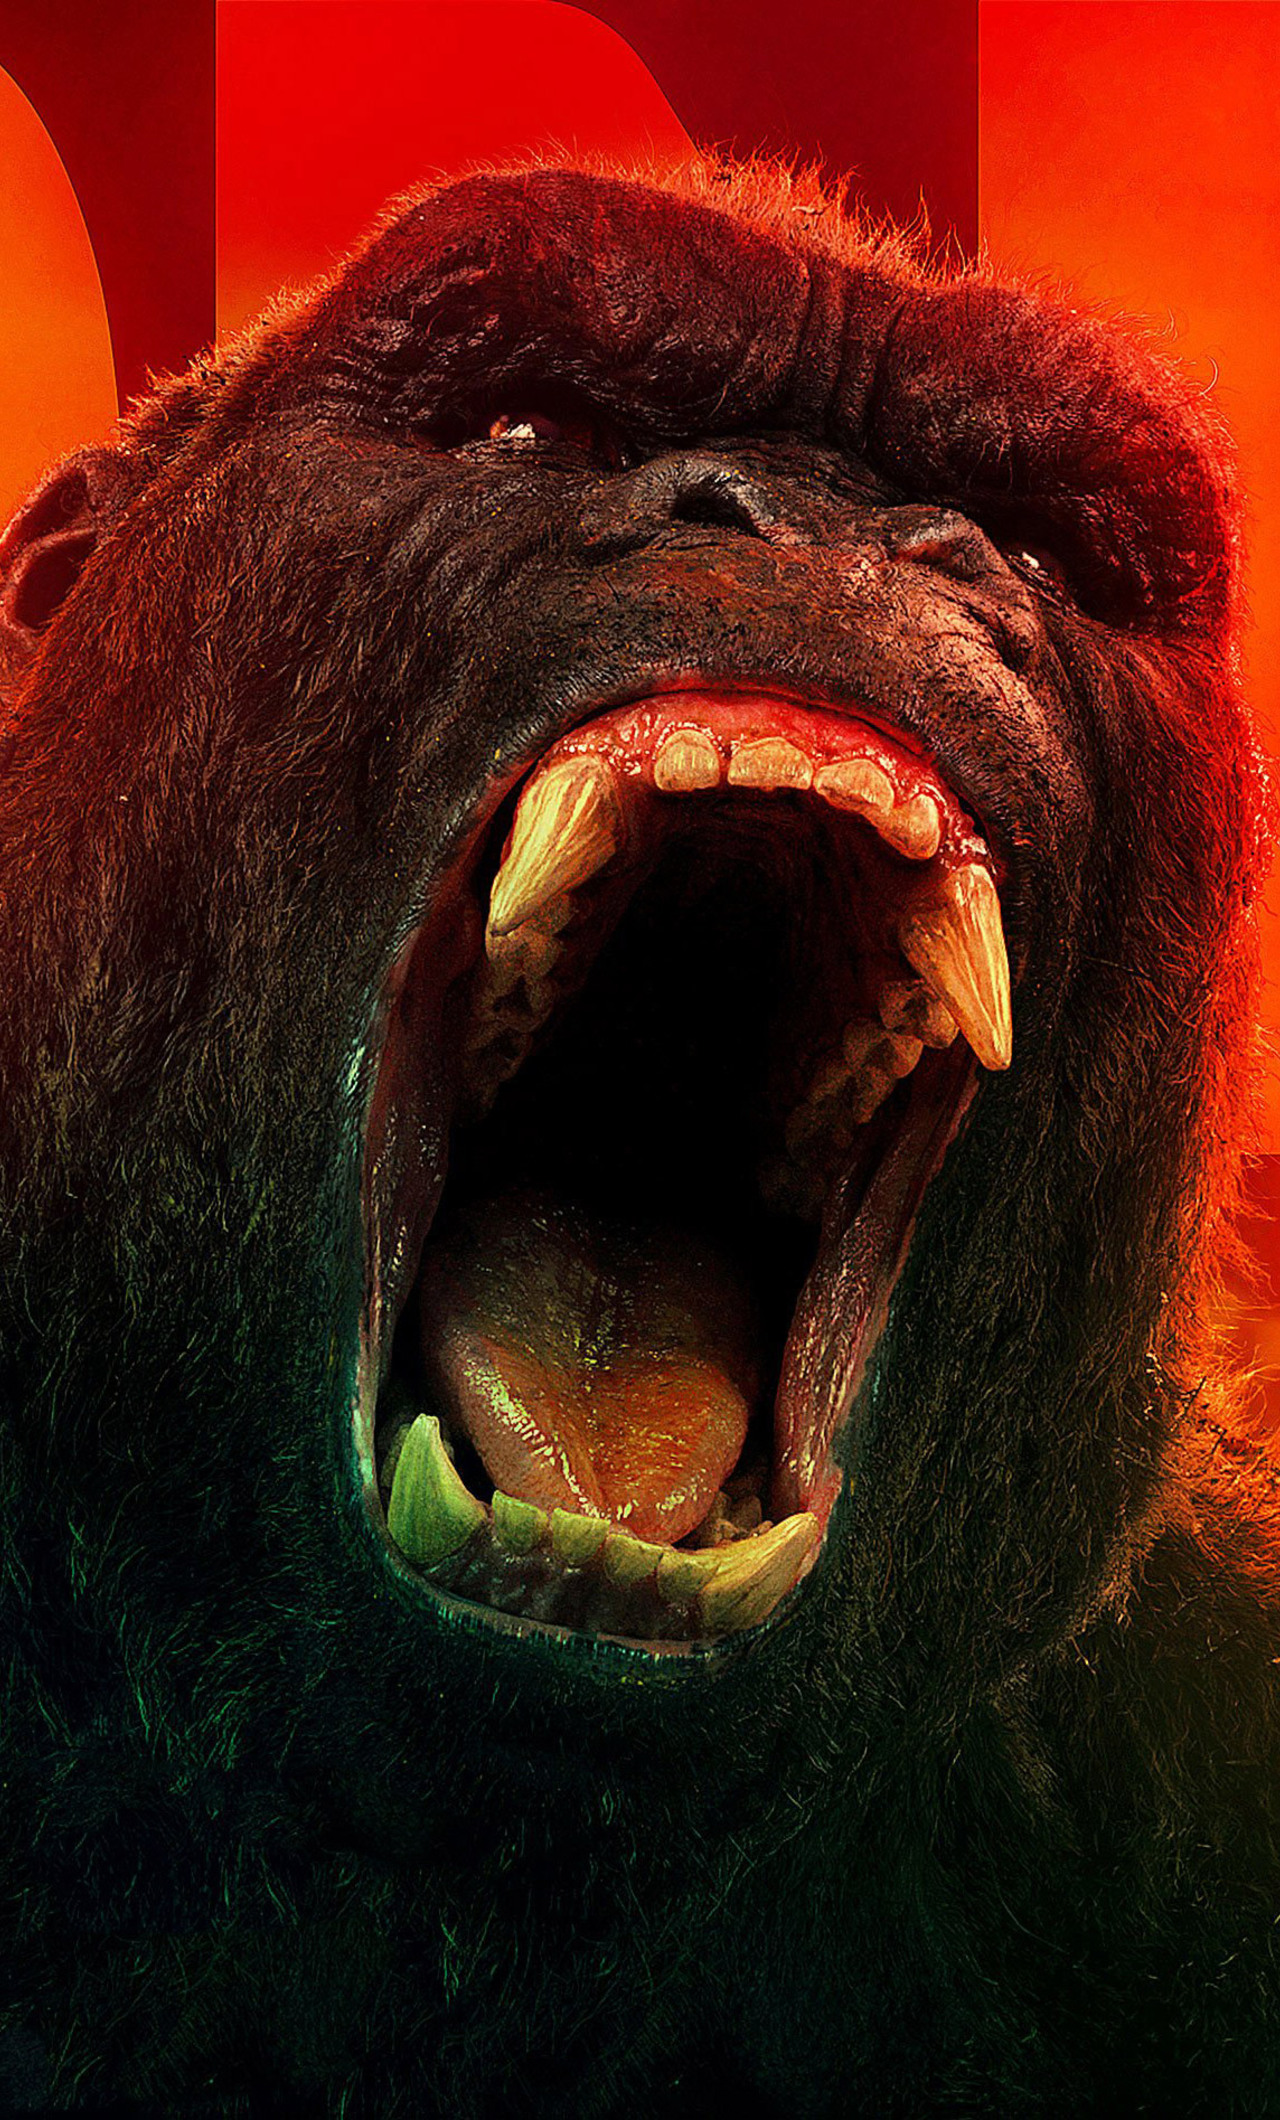 kong-skull-island-all-hail-the-king-4k-img.jpg